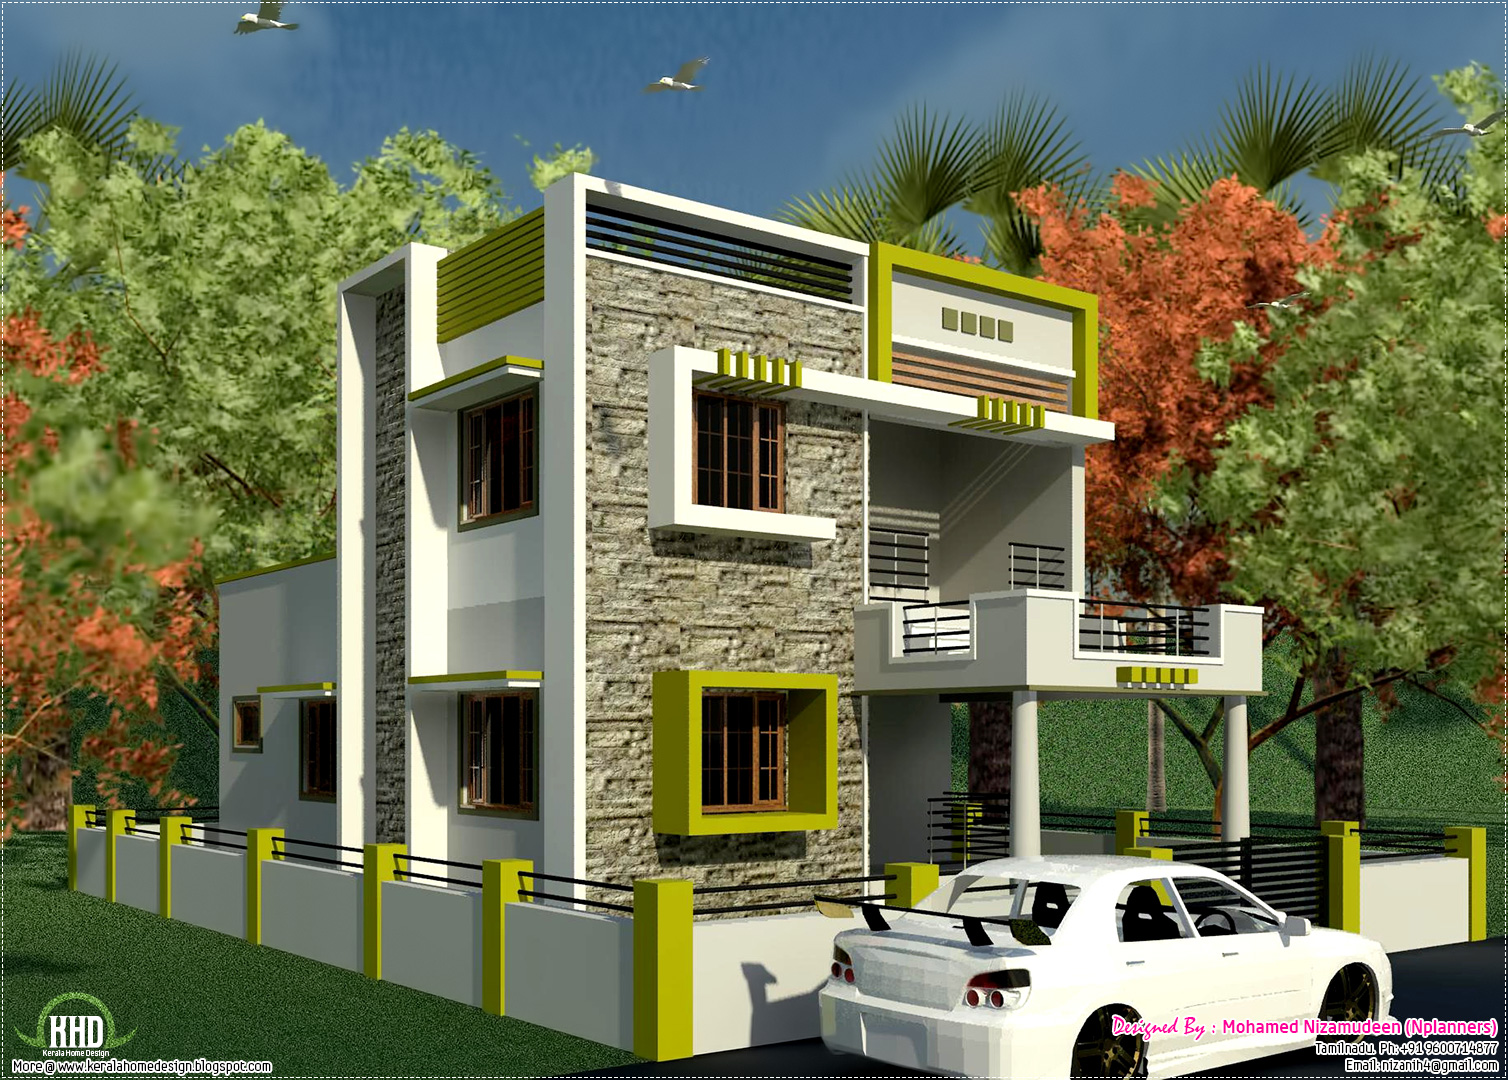 South indian style new modern 1460 sq feet house design for South indian small house designs